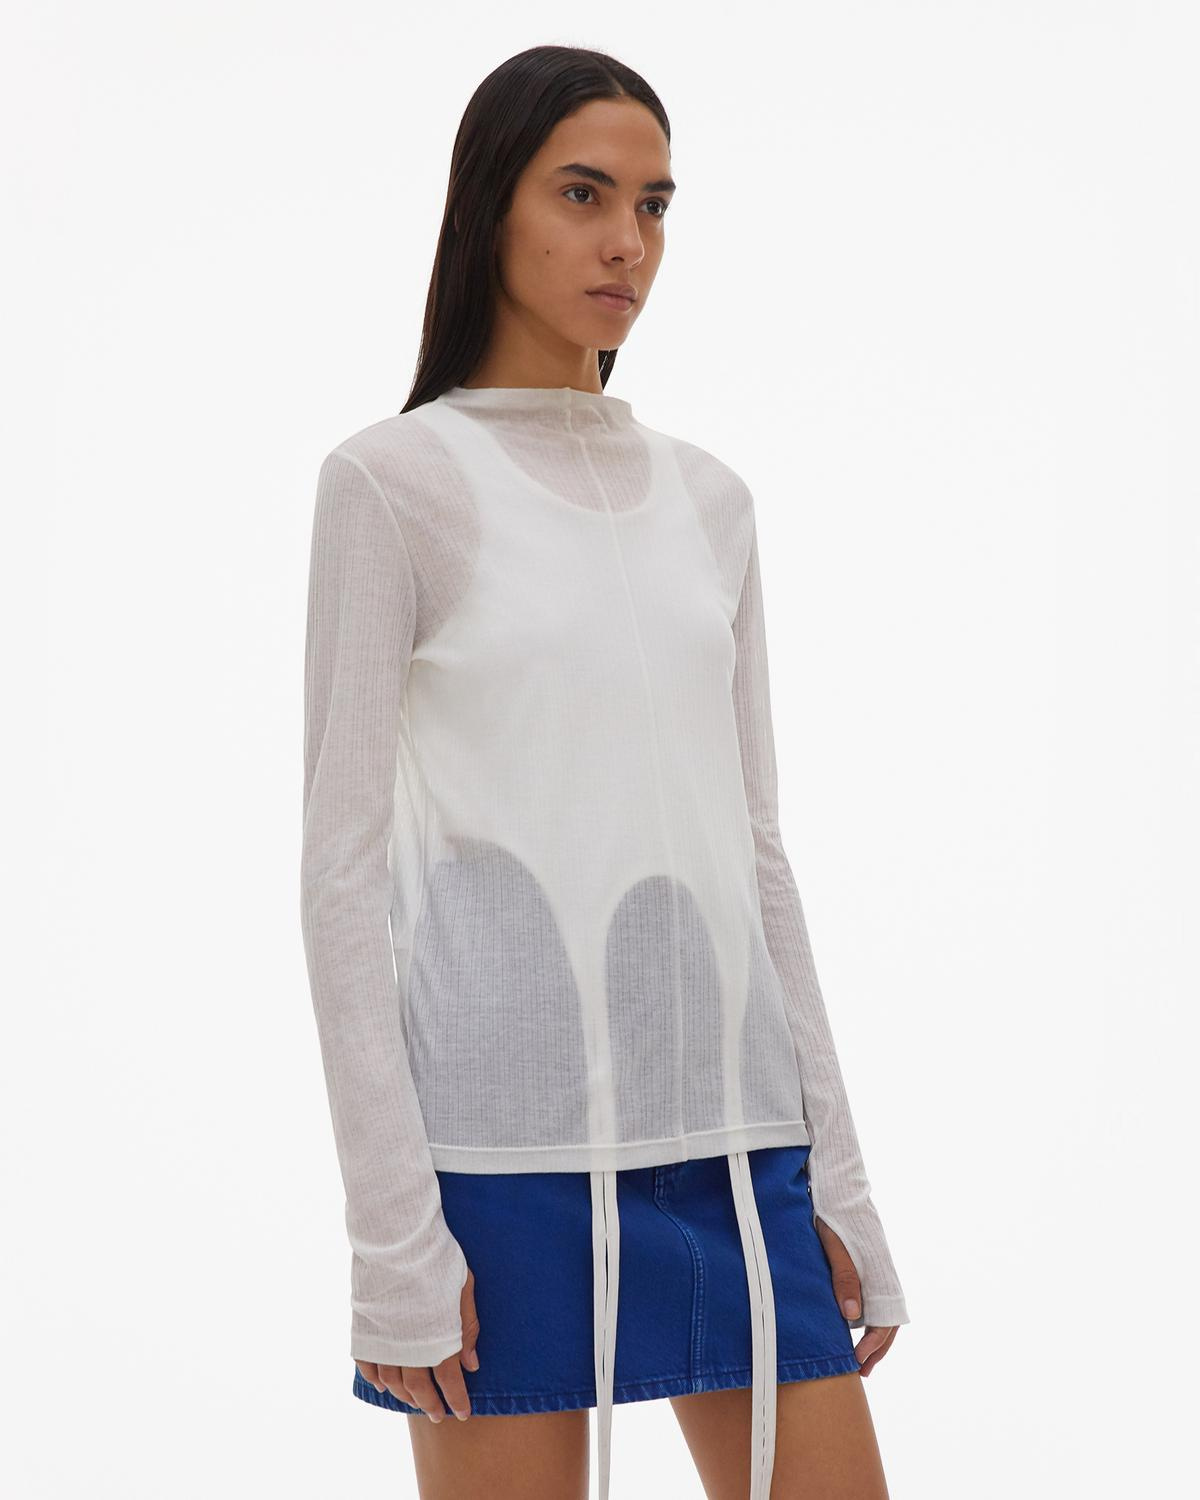 Sheer Longsleeve Shirt